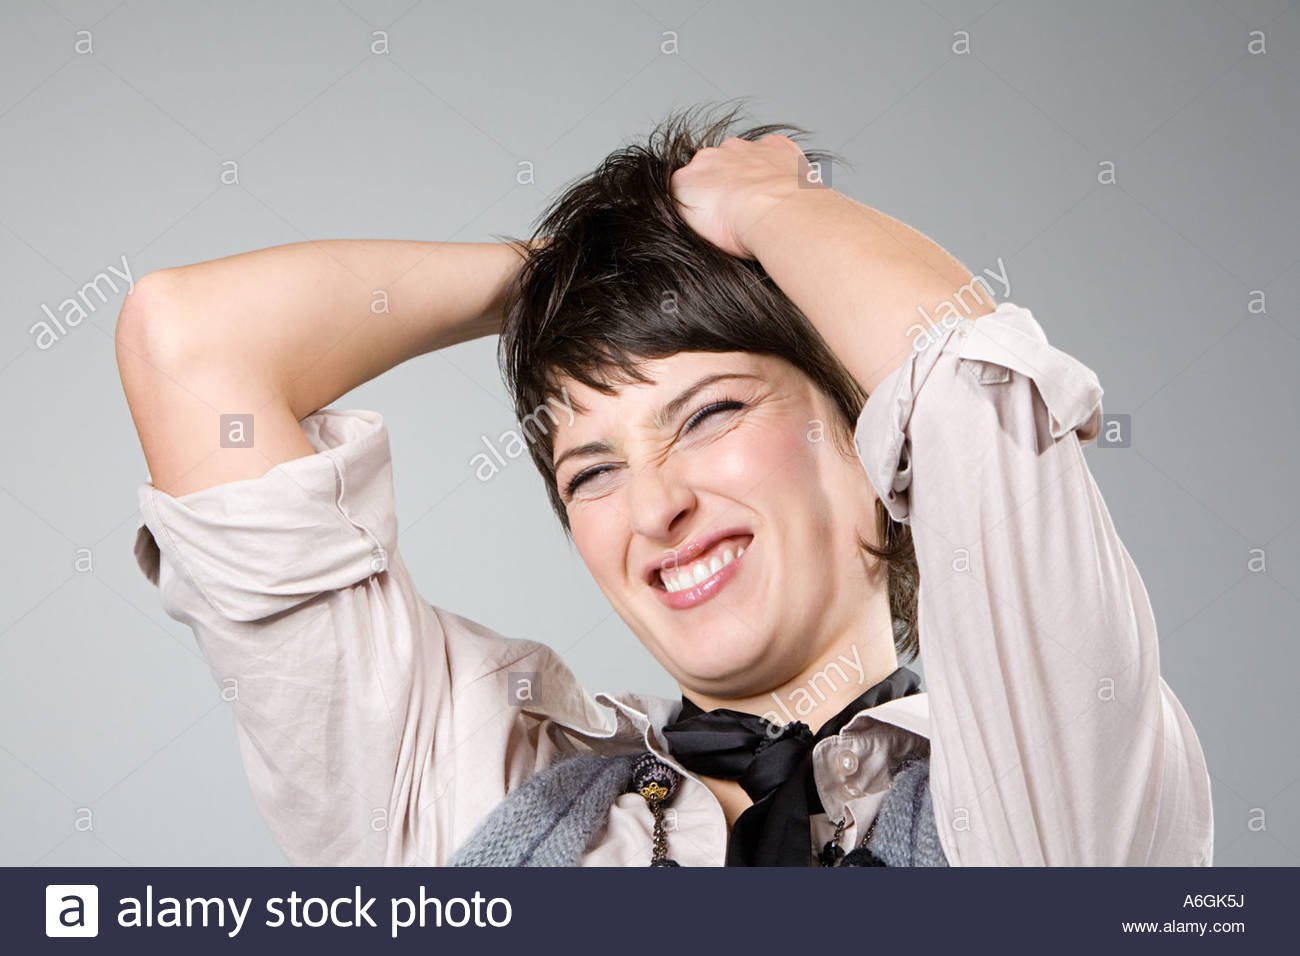 Woman messing with her hair - Stock Image